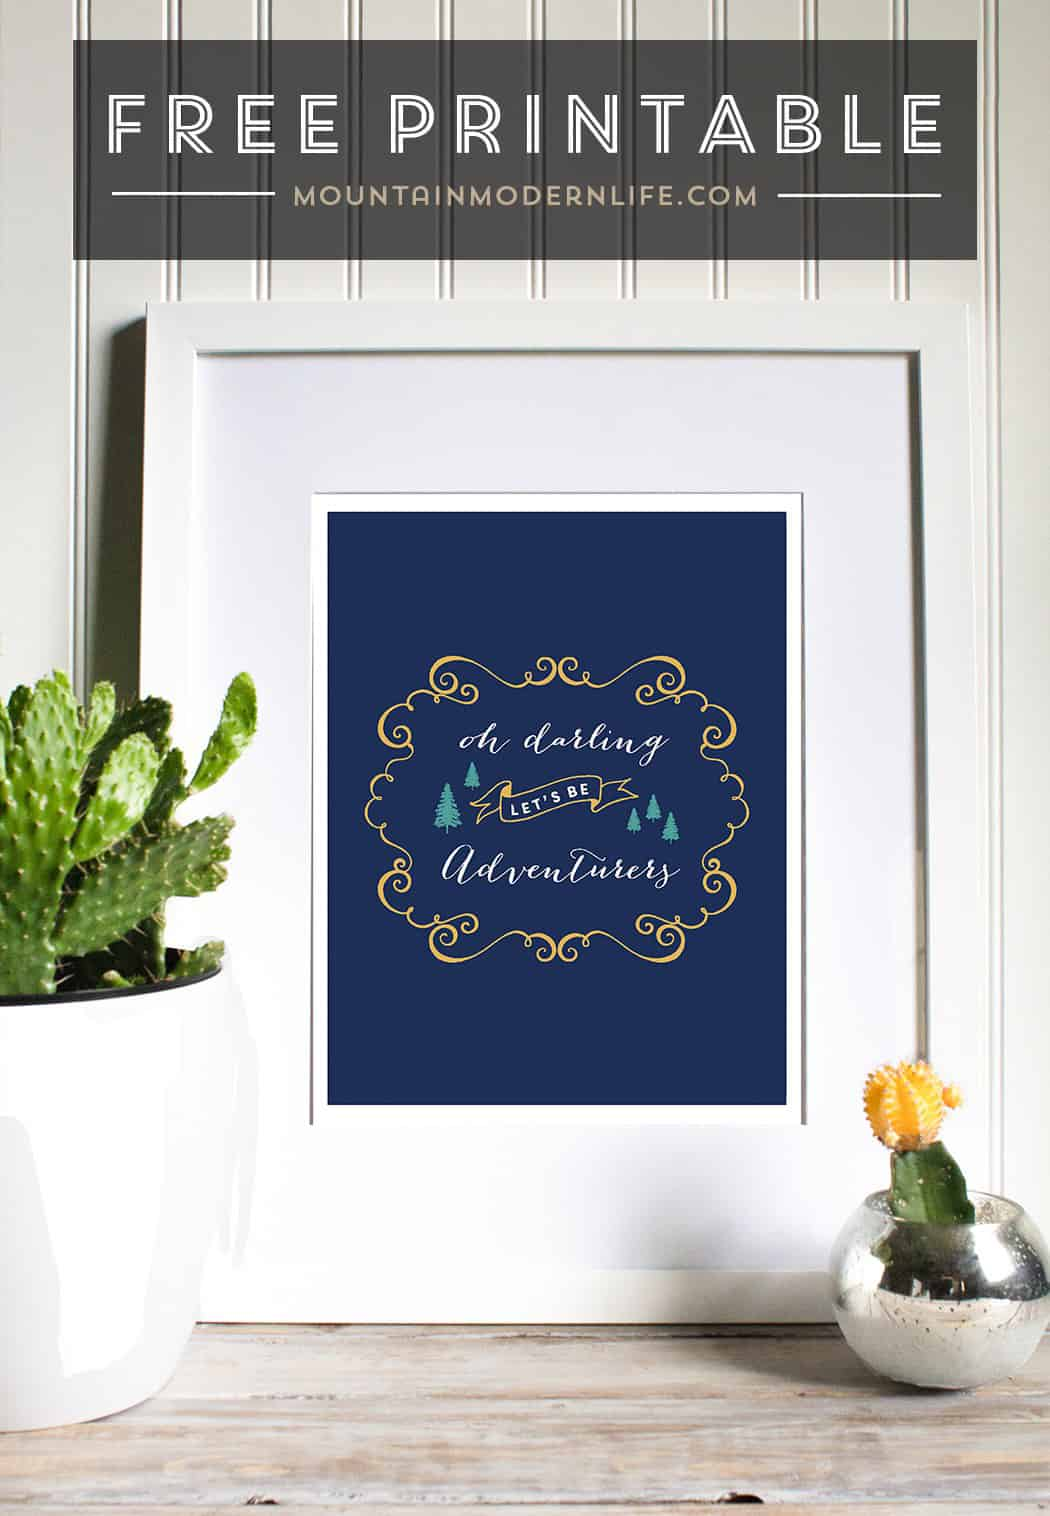 """Download and print this FREE printable that says """"Oh darling let's be adventurers"""". This would be perfect on a gallery wall, or in a kid's room or nursery!"""